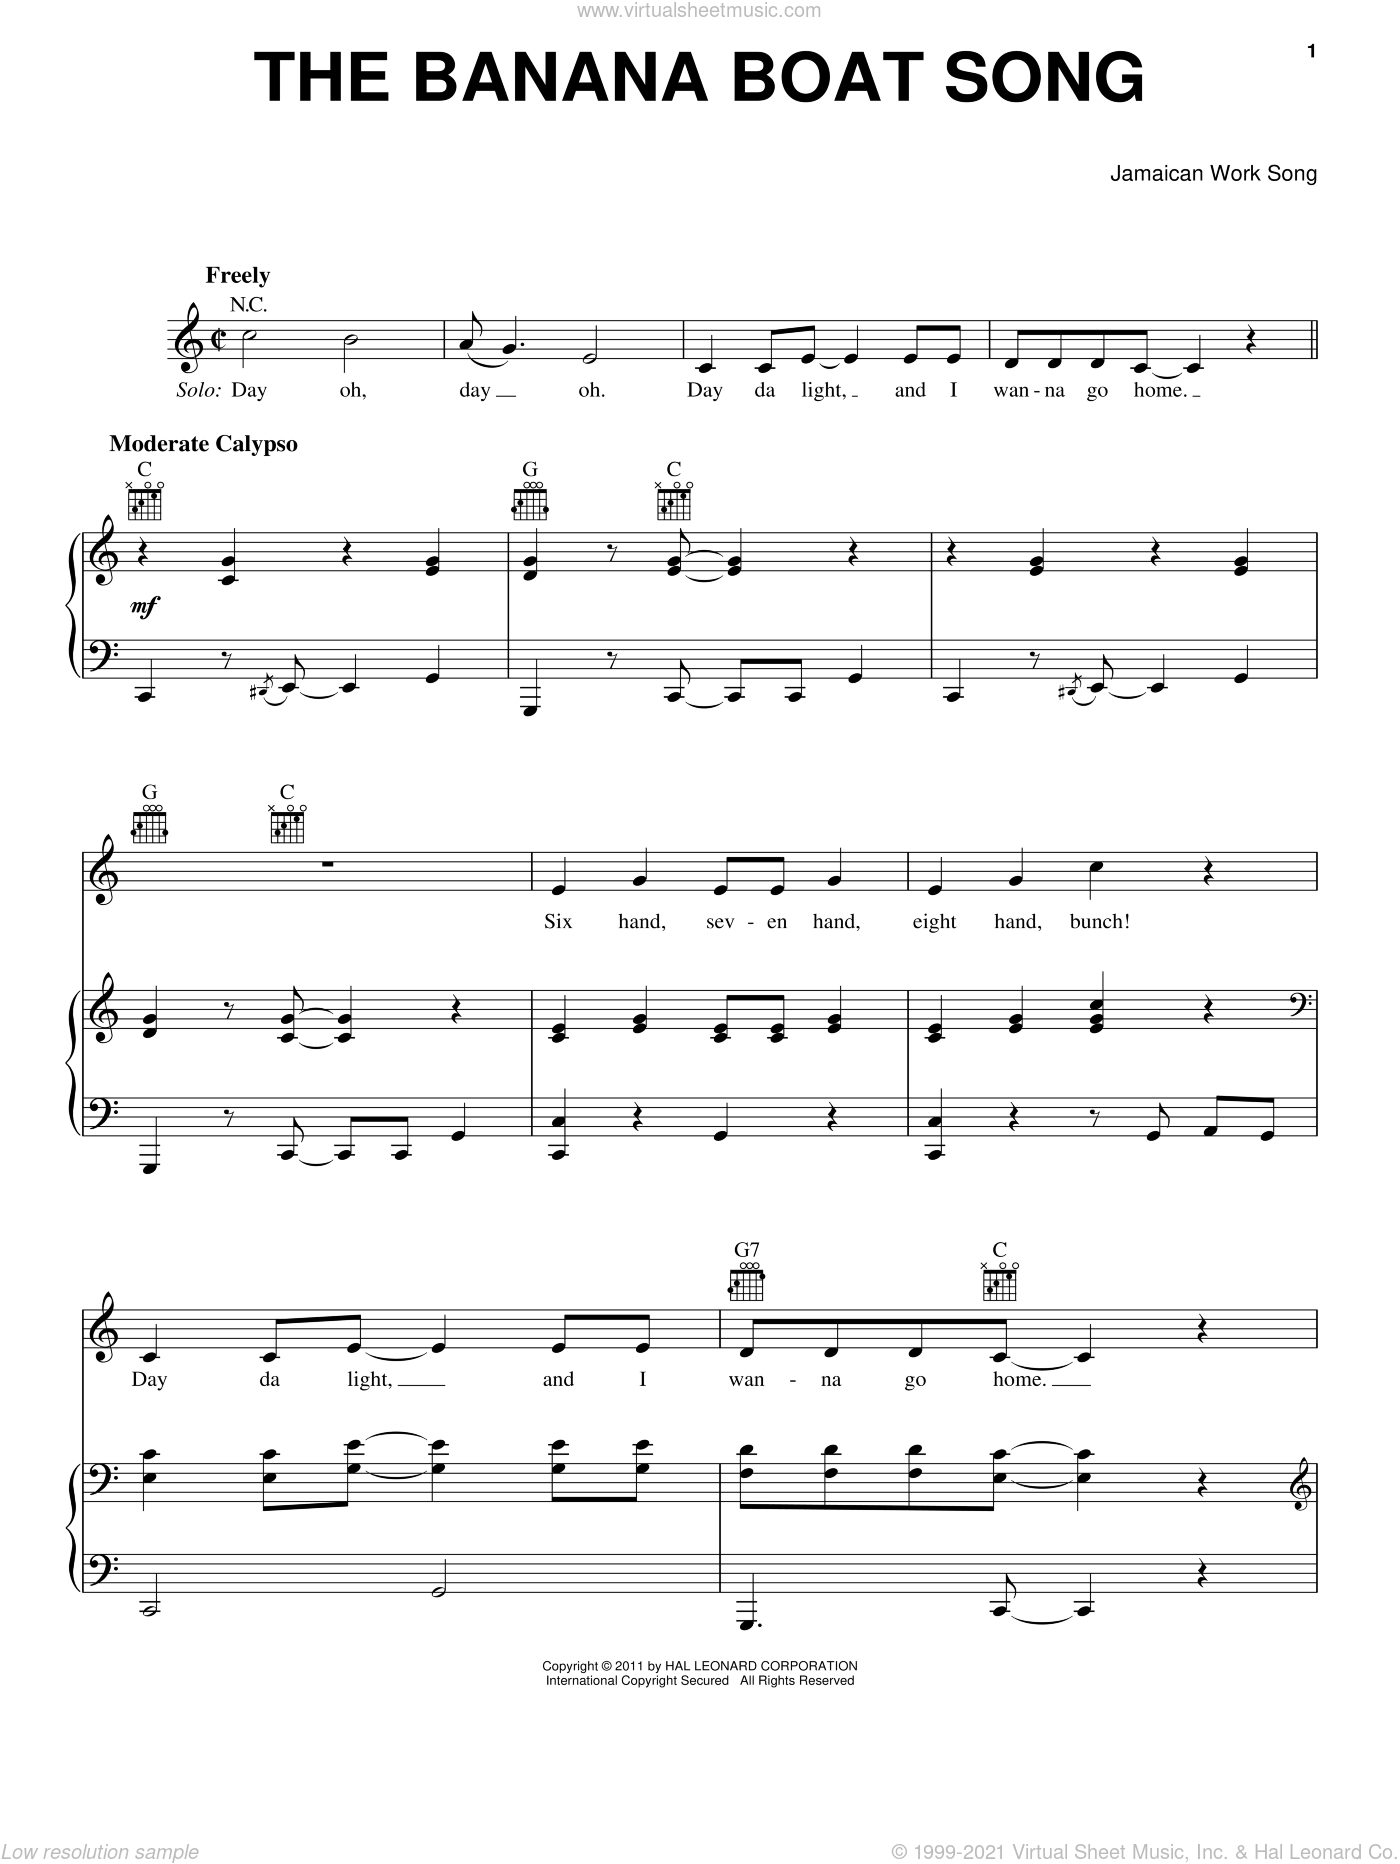 The Banana Boat Song (Day-O) sheet music for voice, piano or guitar, intermediate skill level